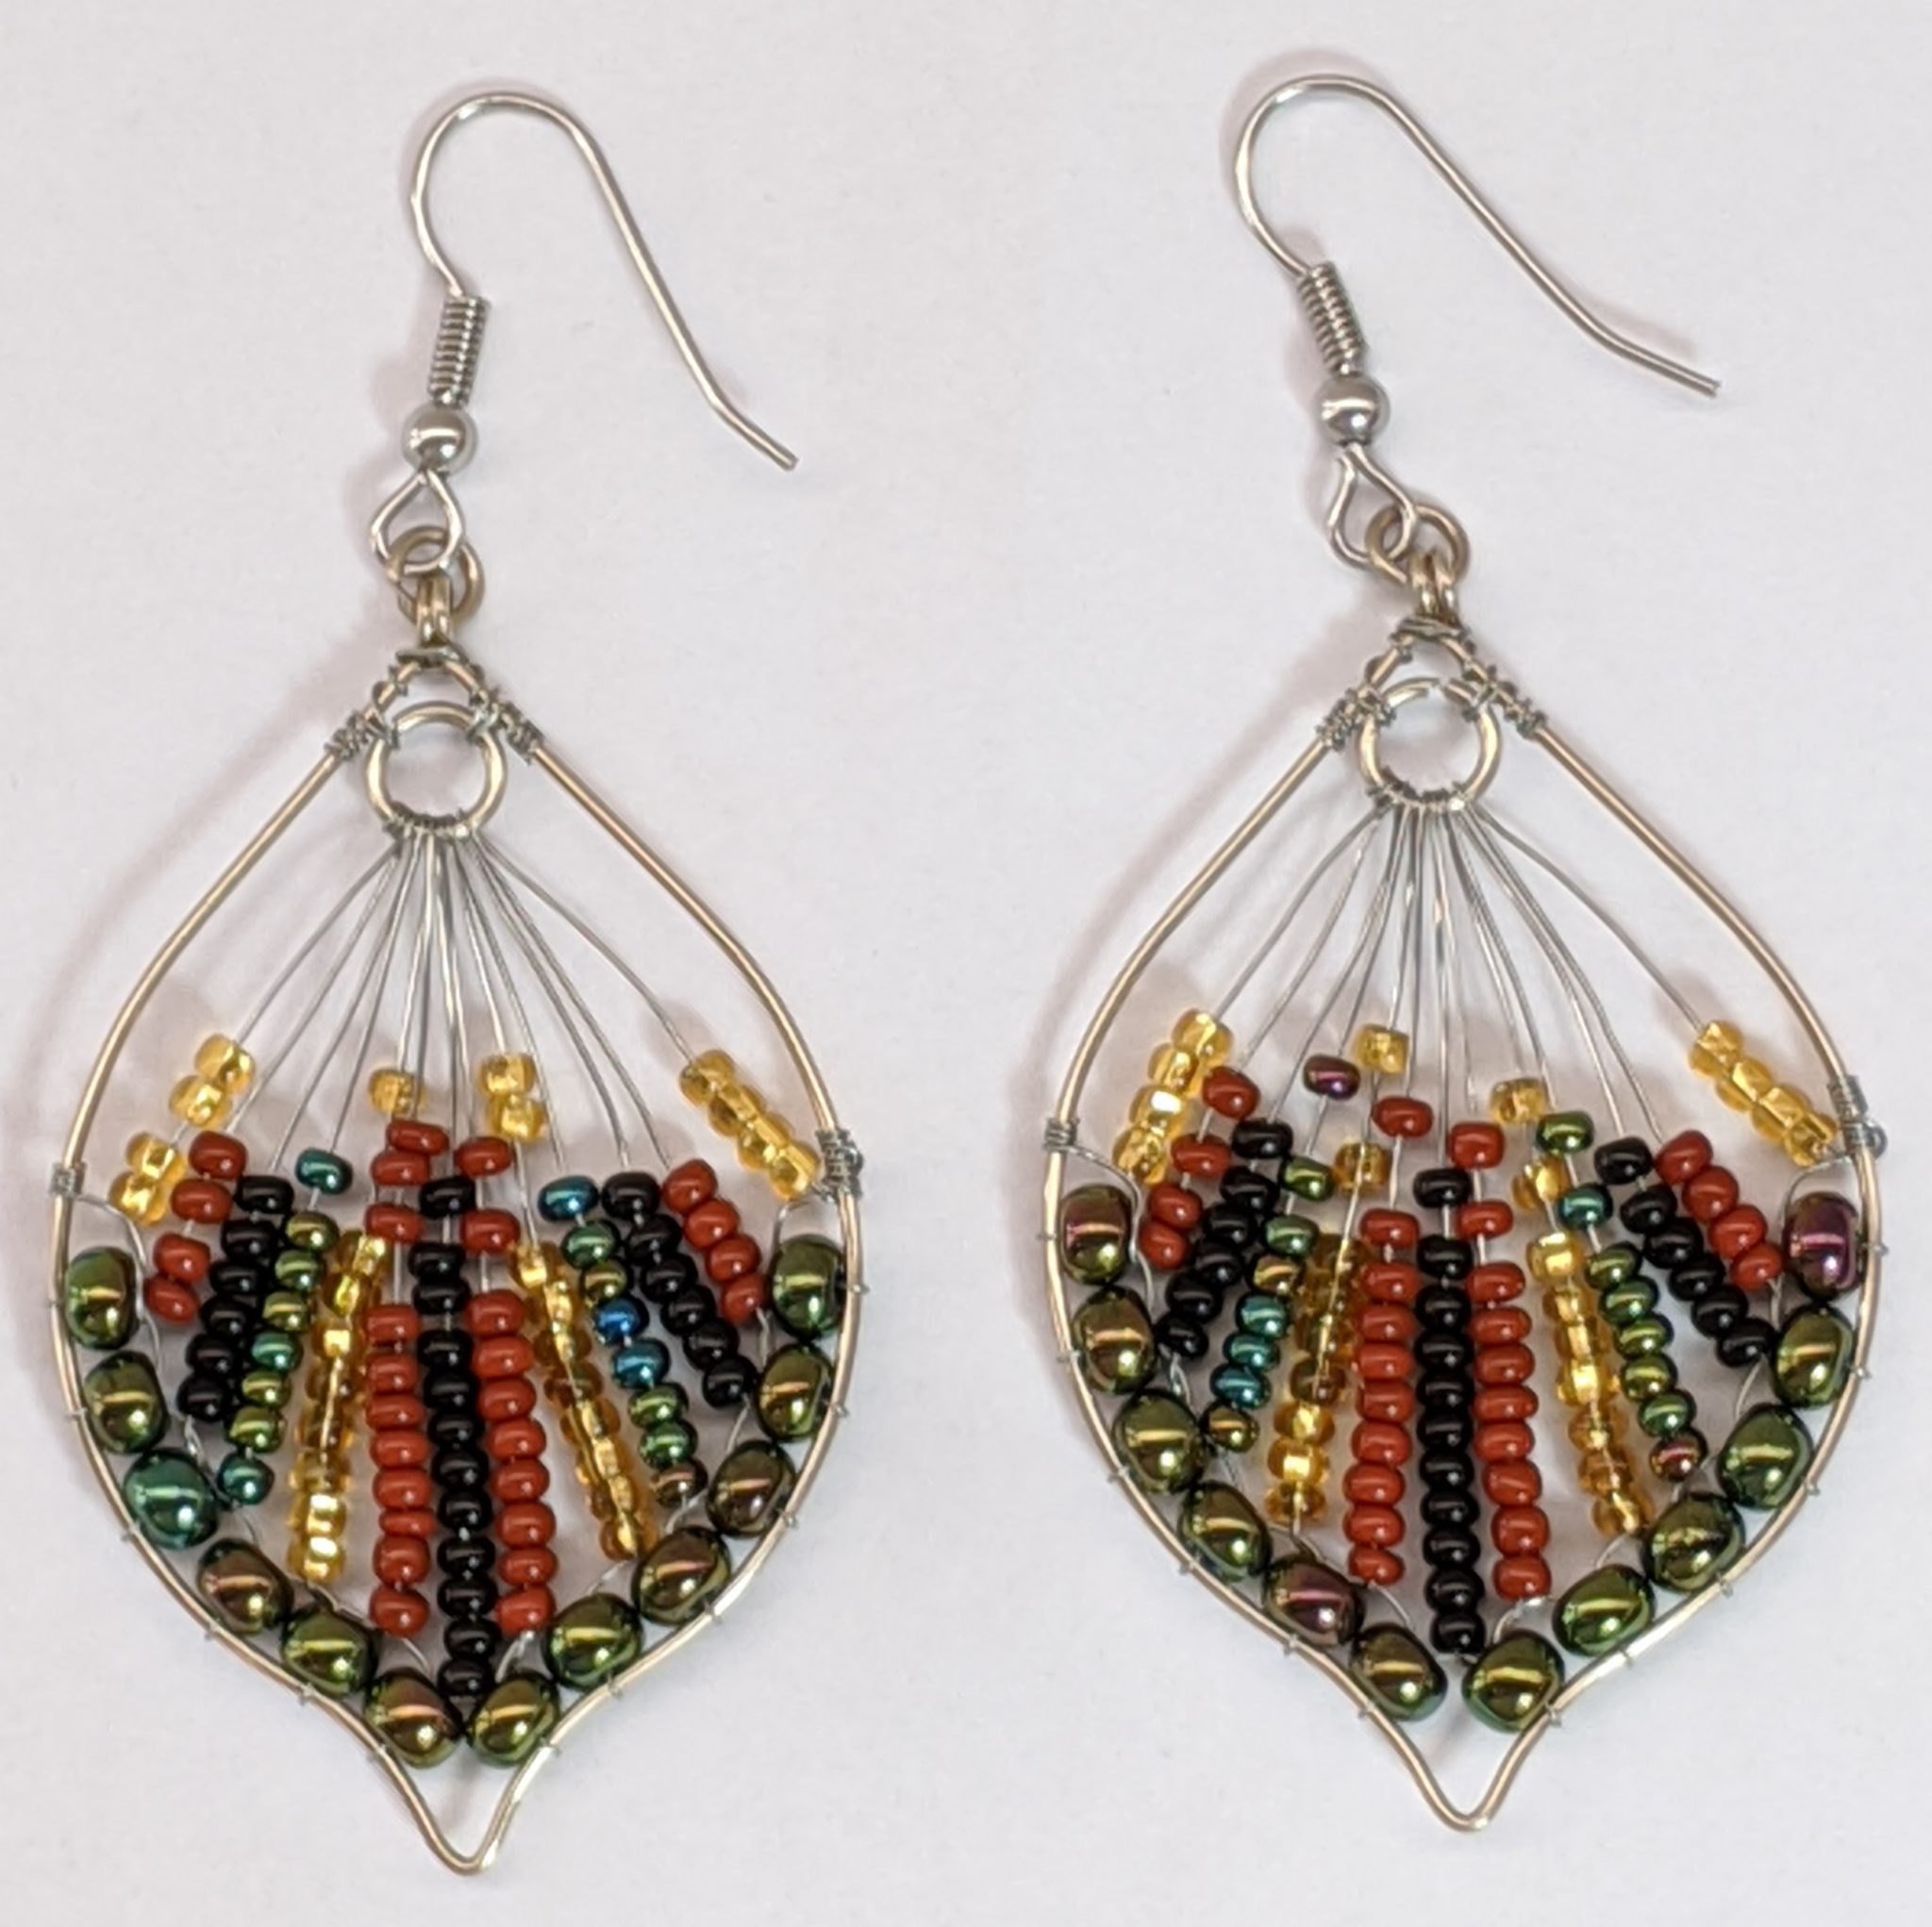 Peacock Tail Beaded Earrings - Sophisticated Autumn